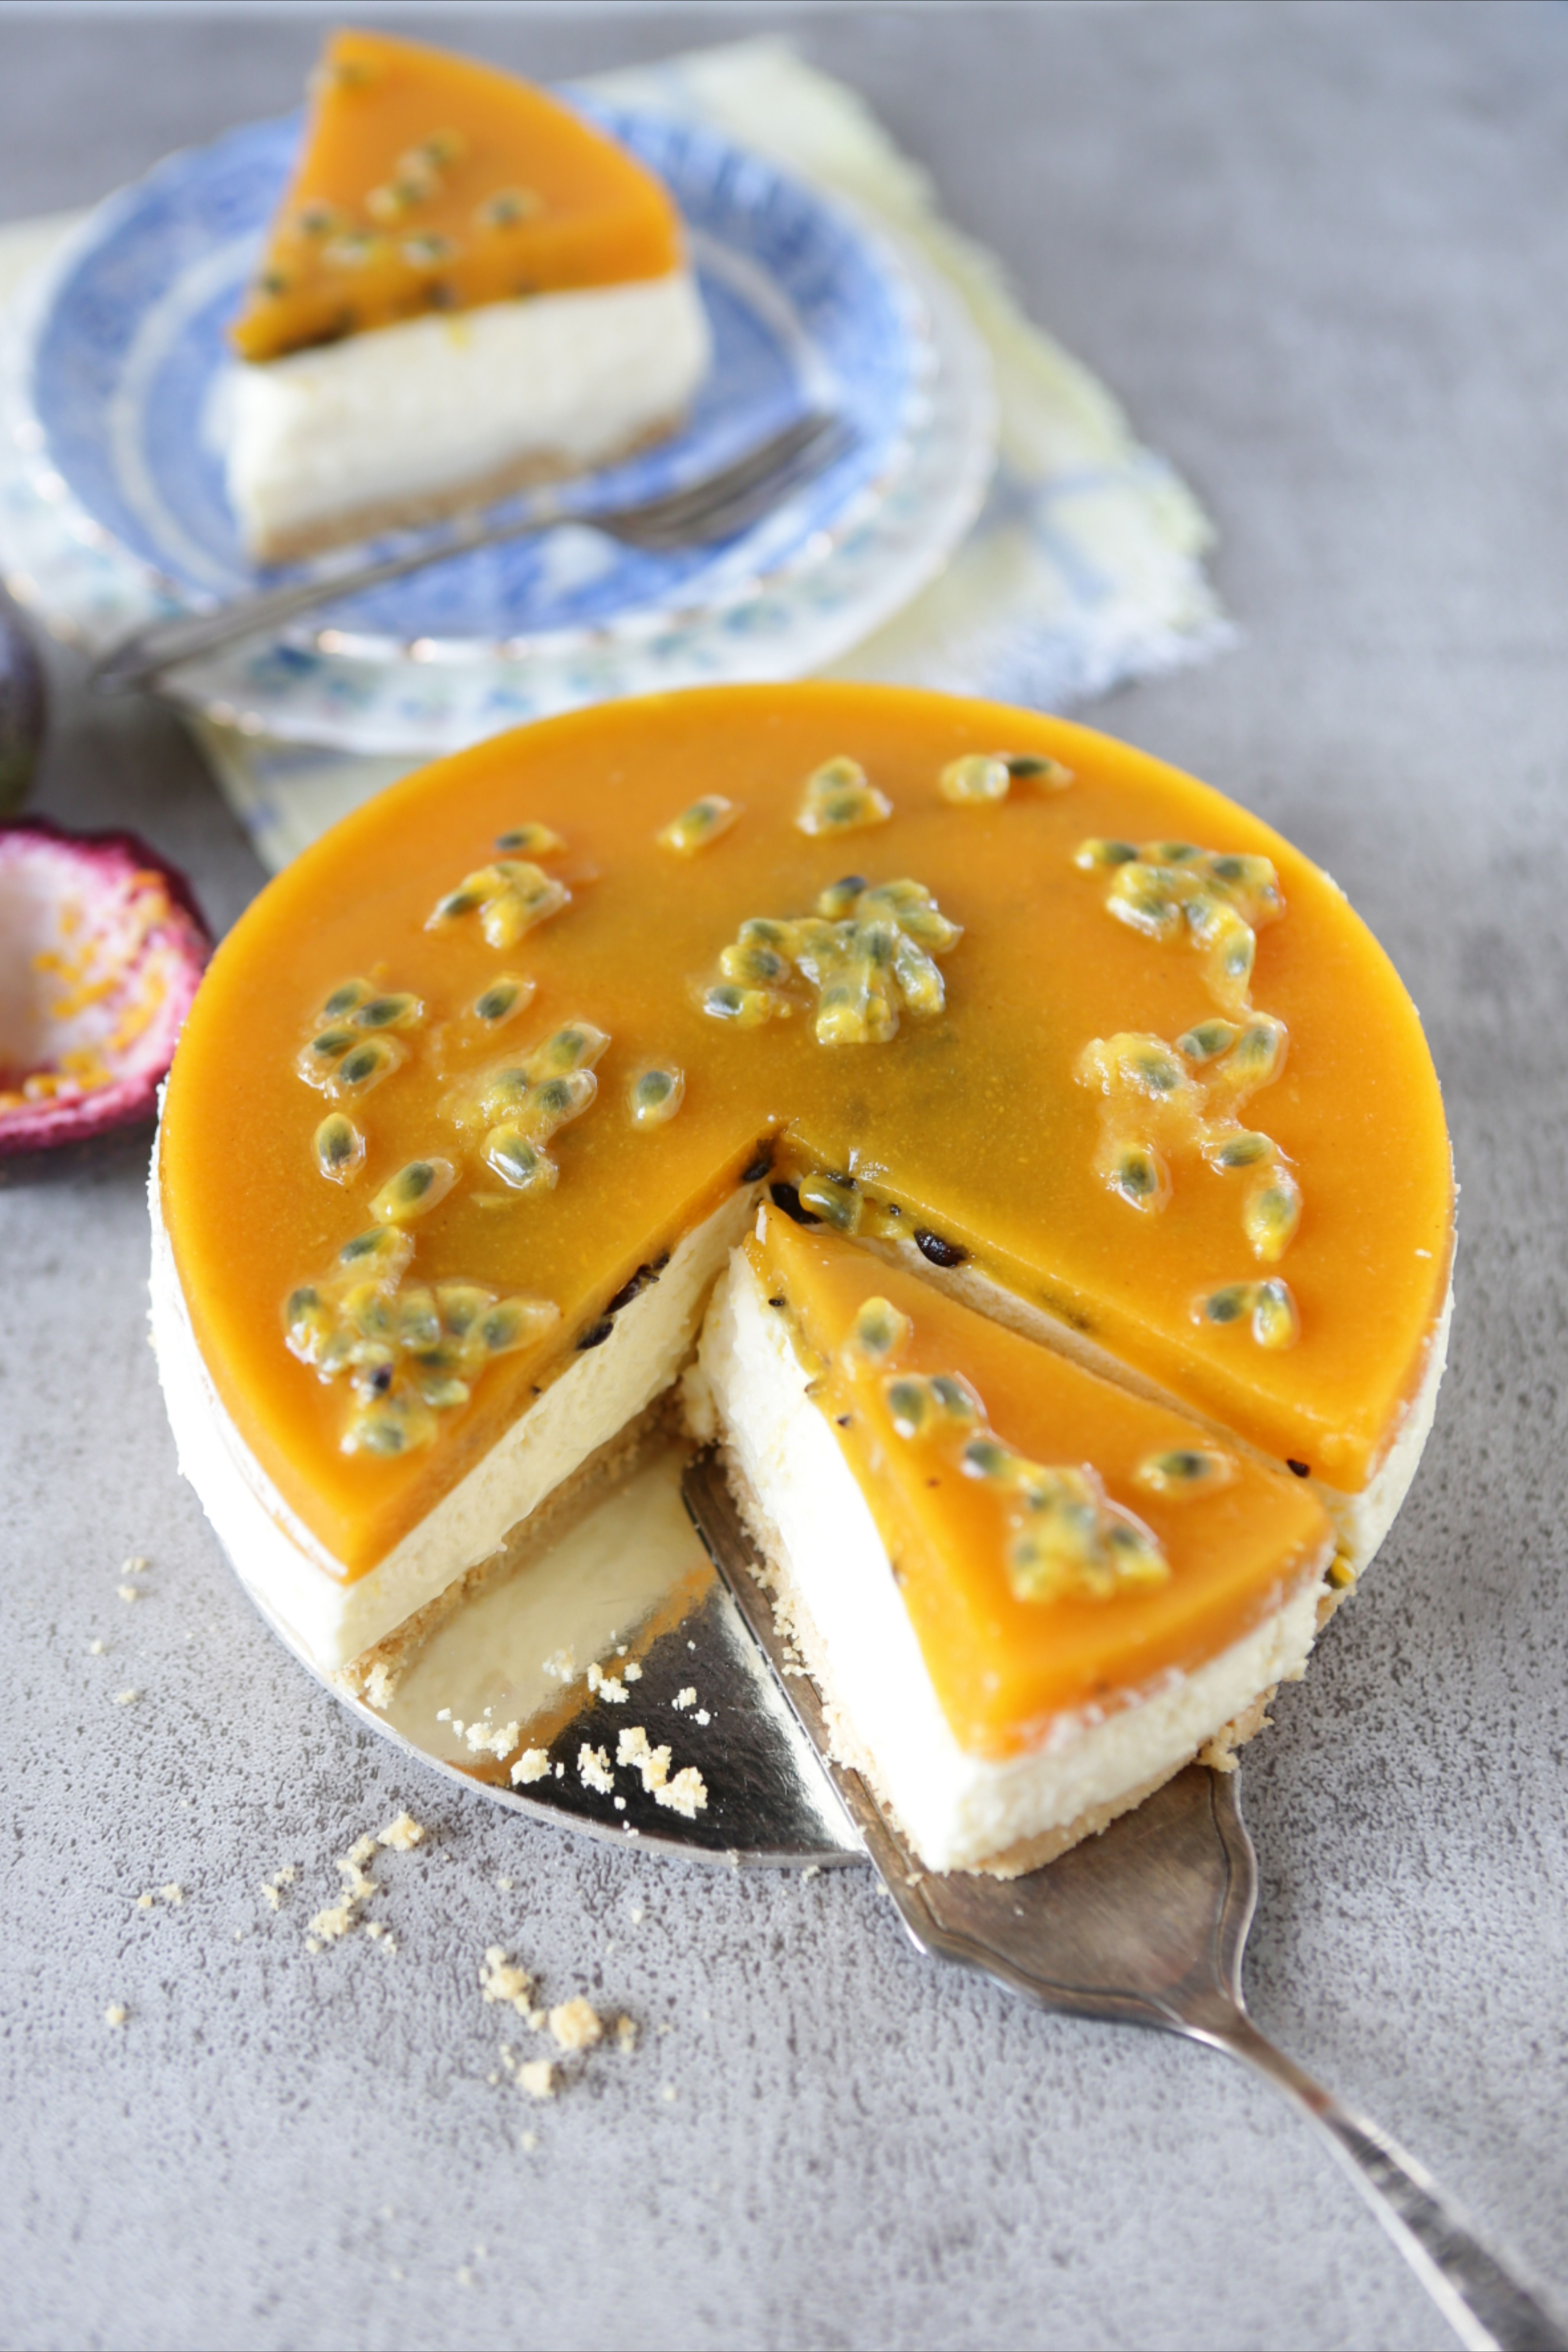 Passionfruit Cheesecake in 2020 Delicious desserts, Nice